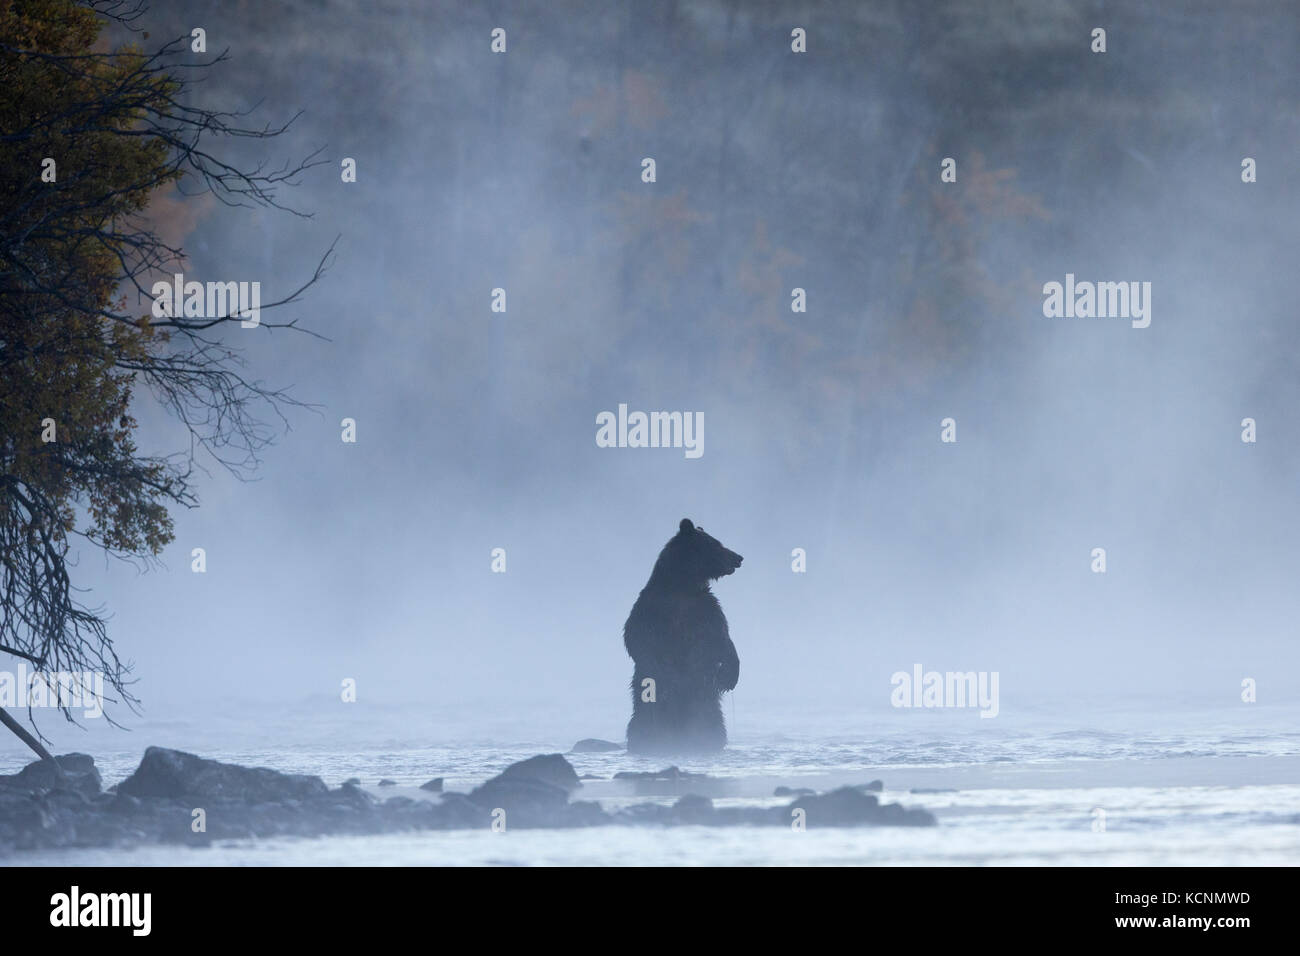 Grizzly bear (Ursus arctos horribilis), female standing in morning mist, Chilcotin Region, British Columbia, Canada. - Stock Image